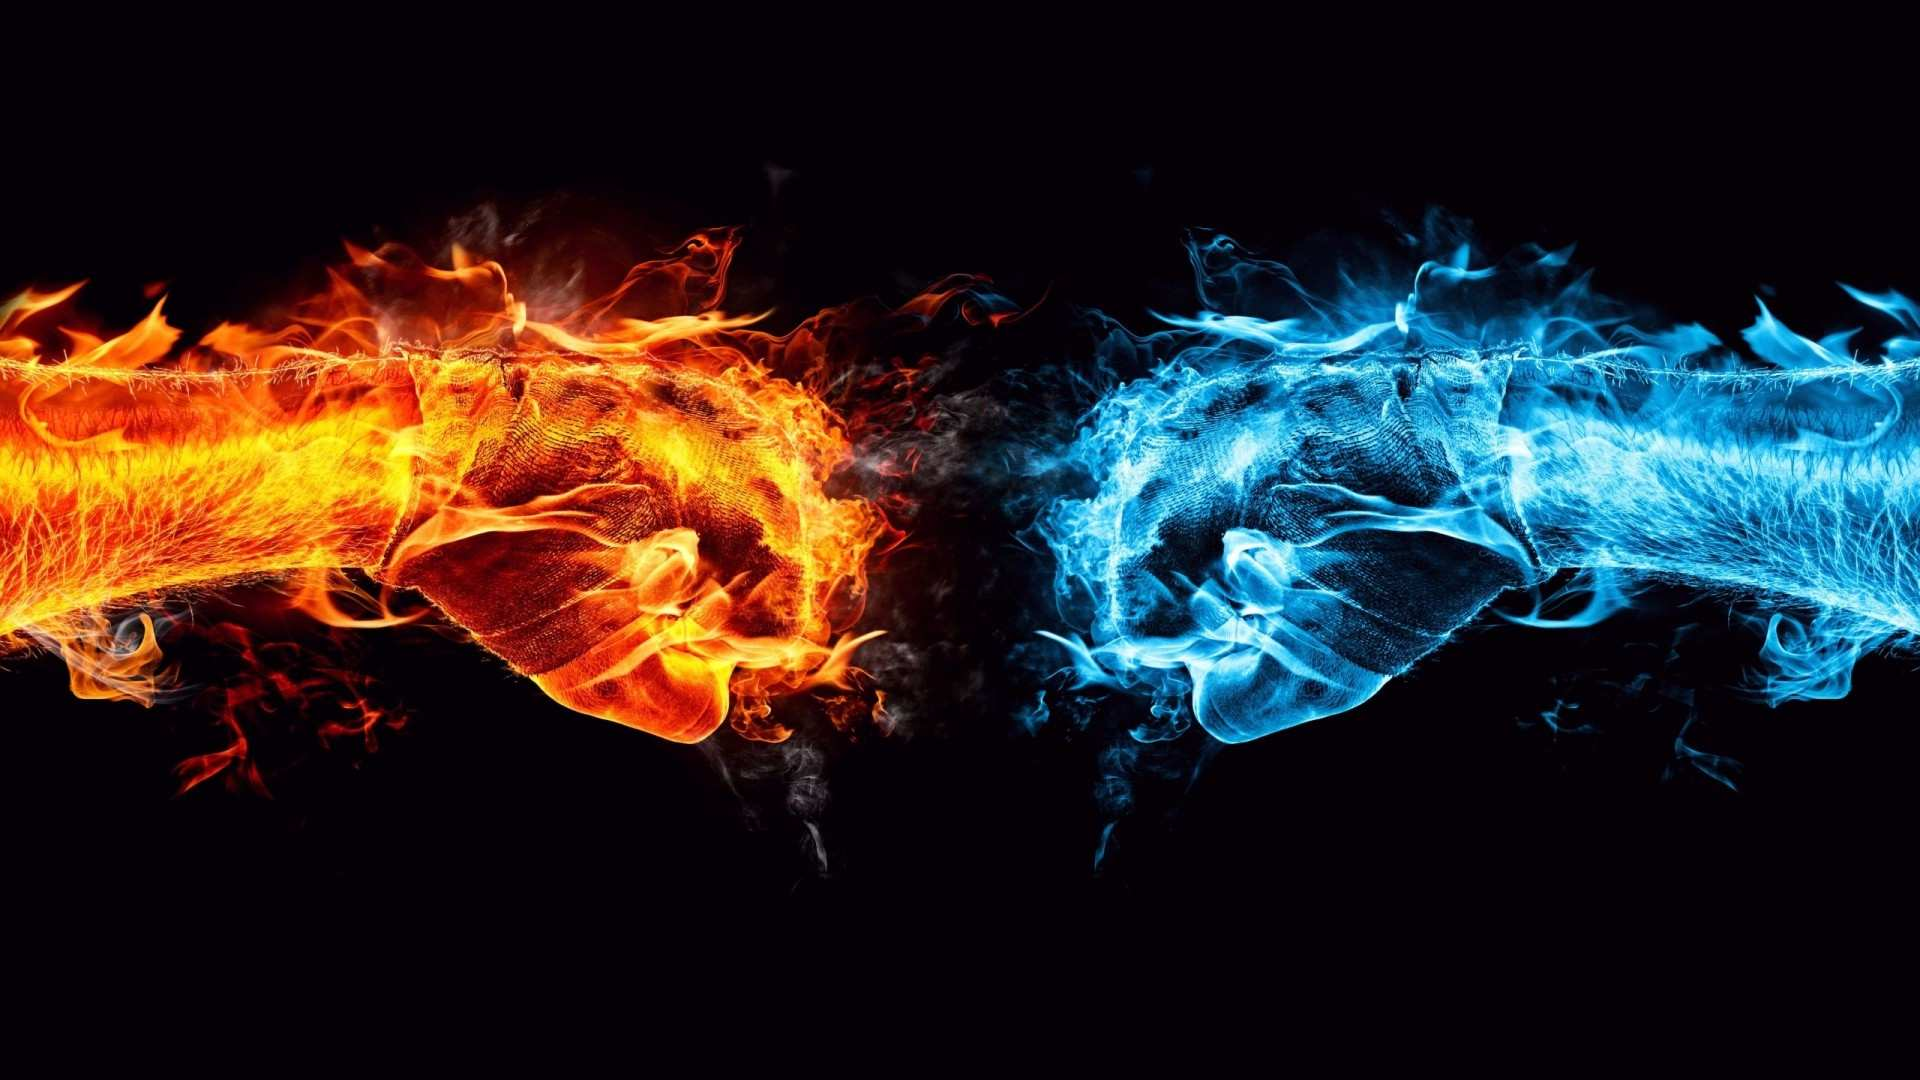 ice fire 3D conflict 1920x1080 Free Wallpaper